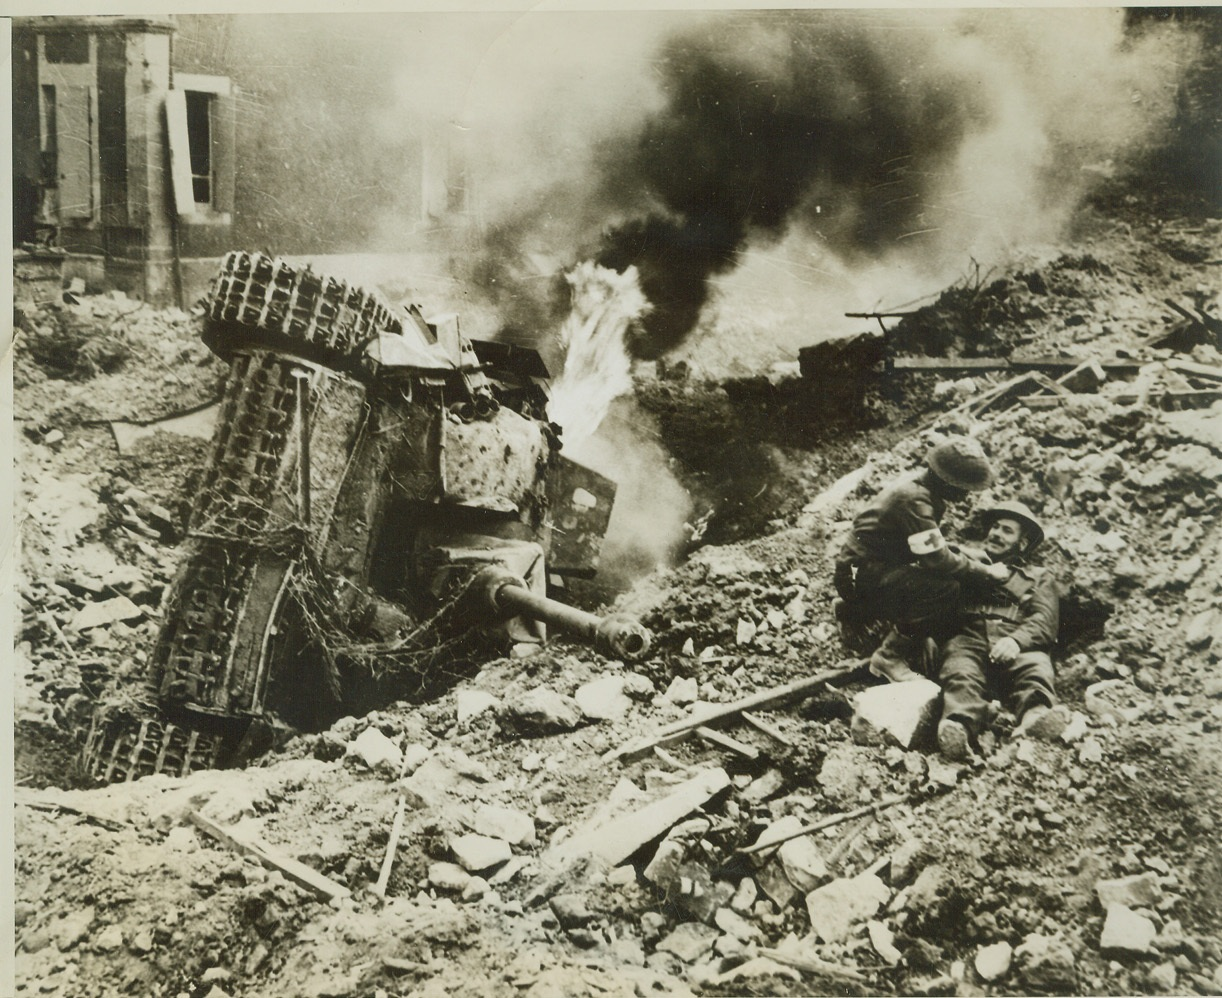 Trap Closes on Nazis, 8/16/1944. FRANCE -- A German tank, overturned in a deep bomb crater, burns fiercely along the road to Falaise, where Allied forces are closing a trap on the German 7th Army, which has already been torn to ribbons. At right (photo above) a medical orderly looks over a Canadian soldier who has fallen but is uninjured. Credit: (ACME) (WP);